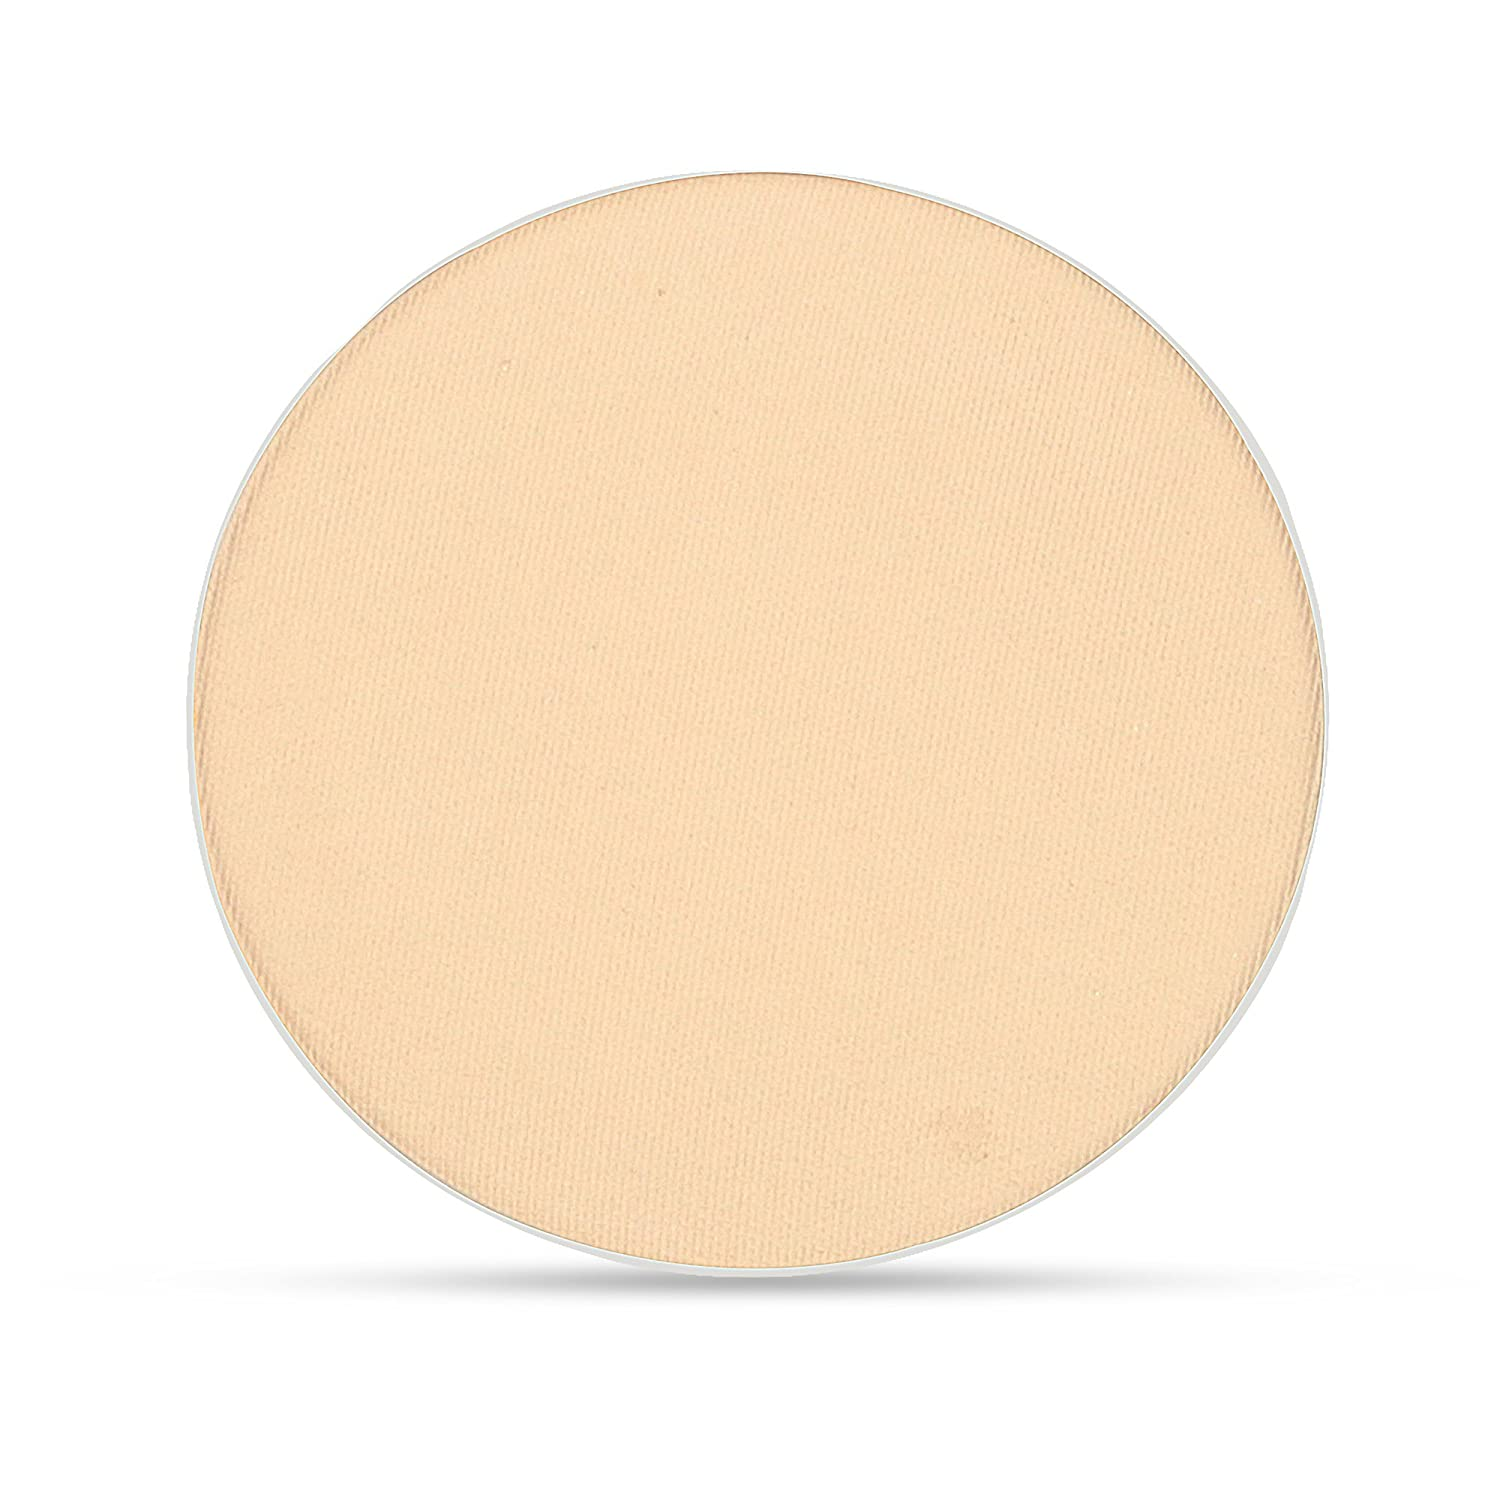 CLOVE + HALLOW Pressed Mineral Foundation - Natural Cruelty Free Vegan Foundation Makeup Powder - 02